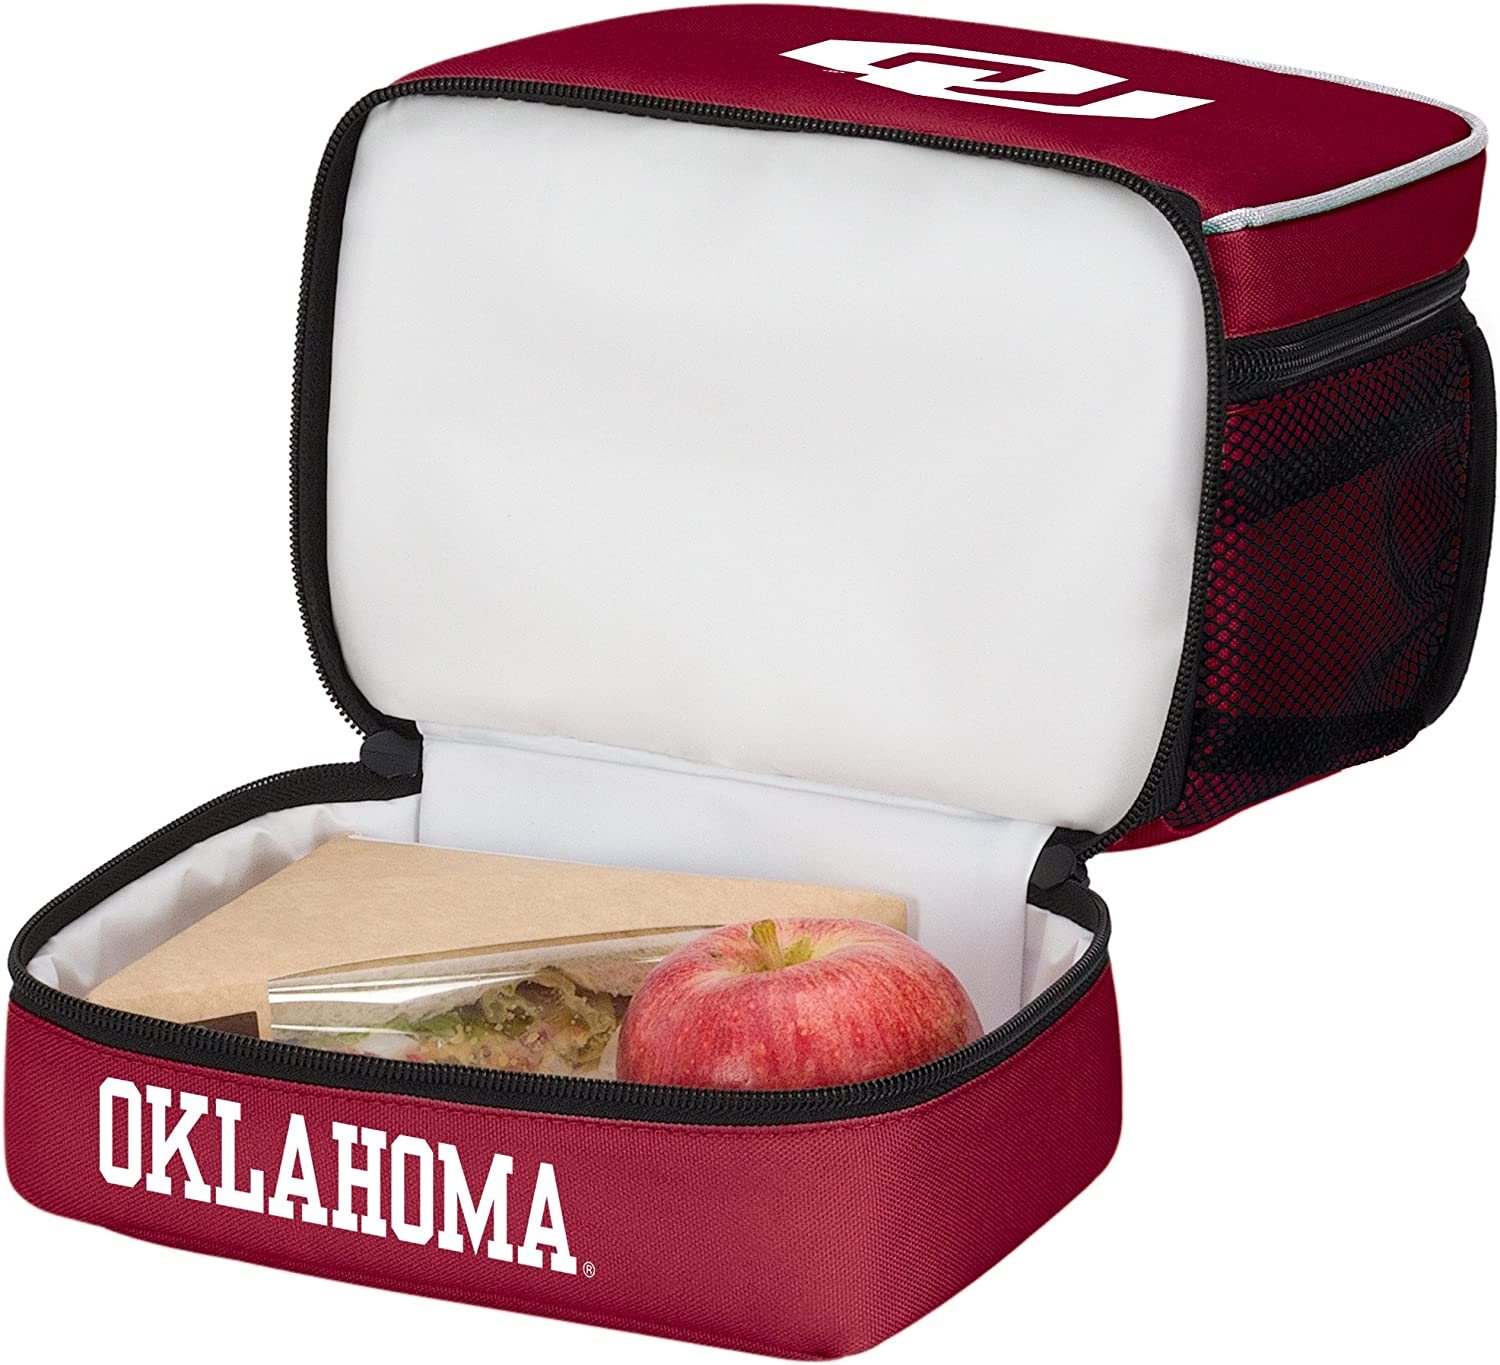 Officially Licensed NCAA Spark Lunch Kit Bag Multi Color 9 x 4.5 x 7.25